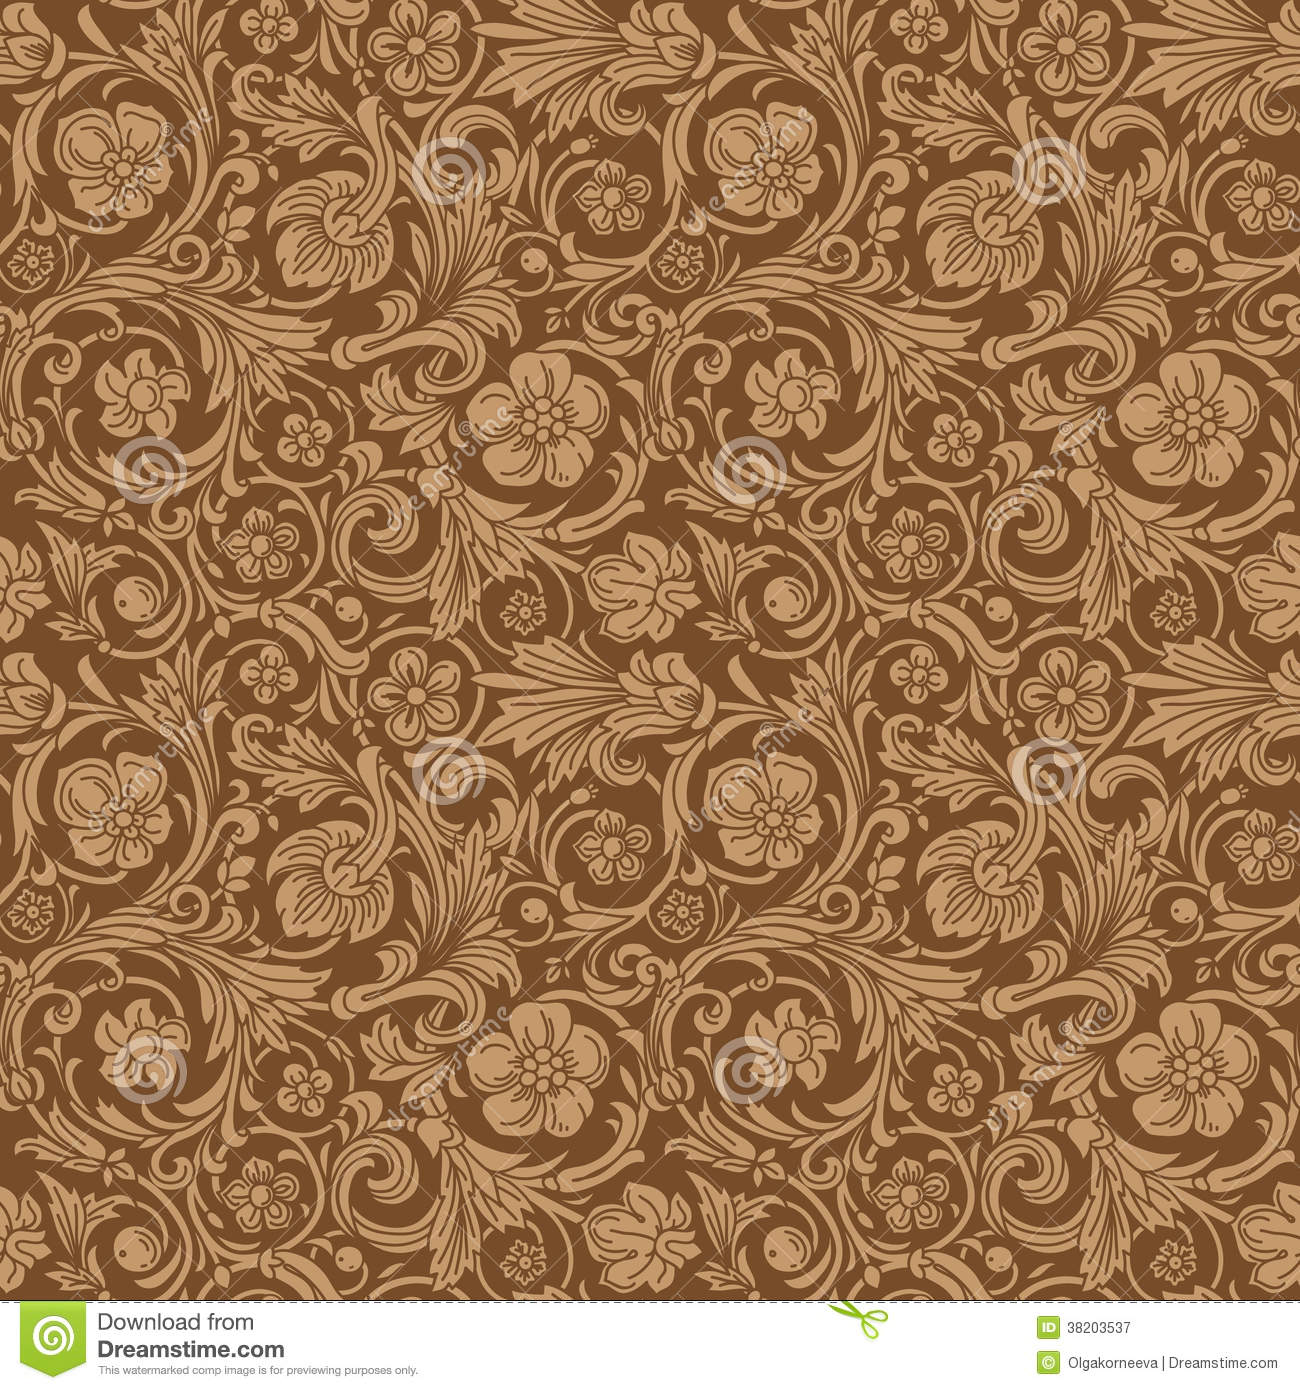 3d Wallpaper For Walls Designs Vintage Classic Ornamental Seamless Vector Pattern Royalty